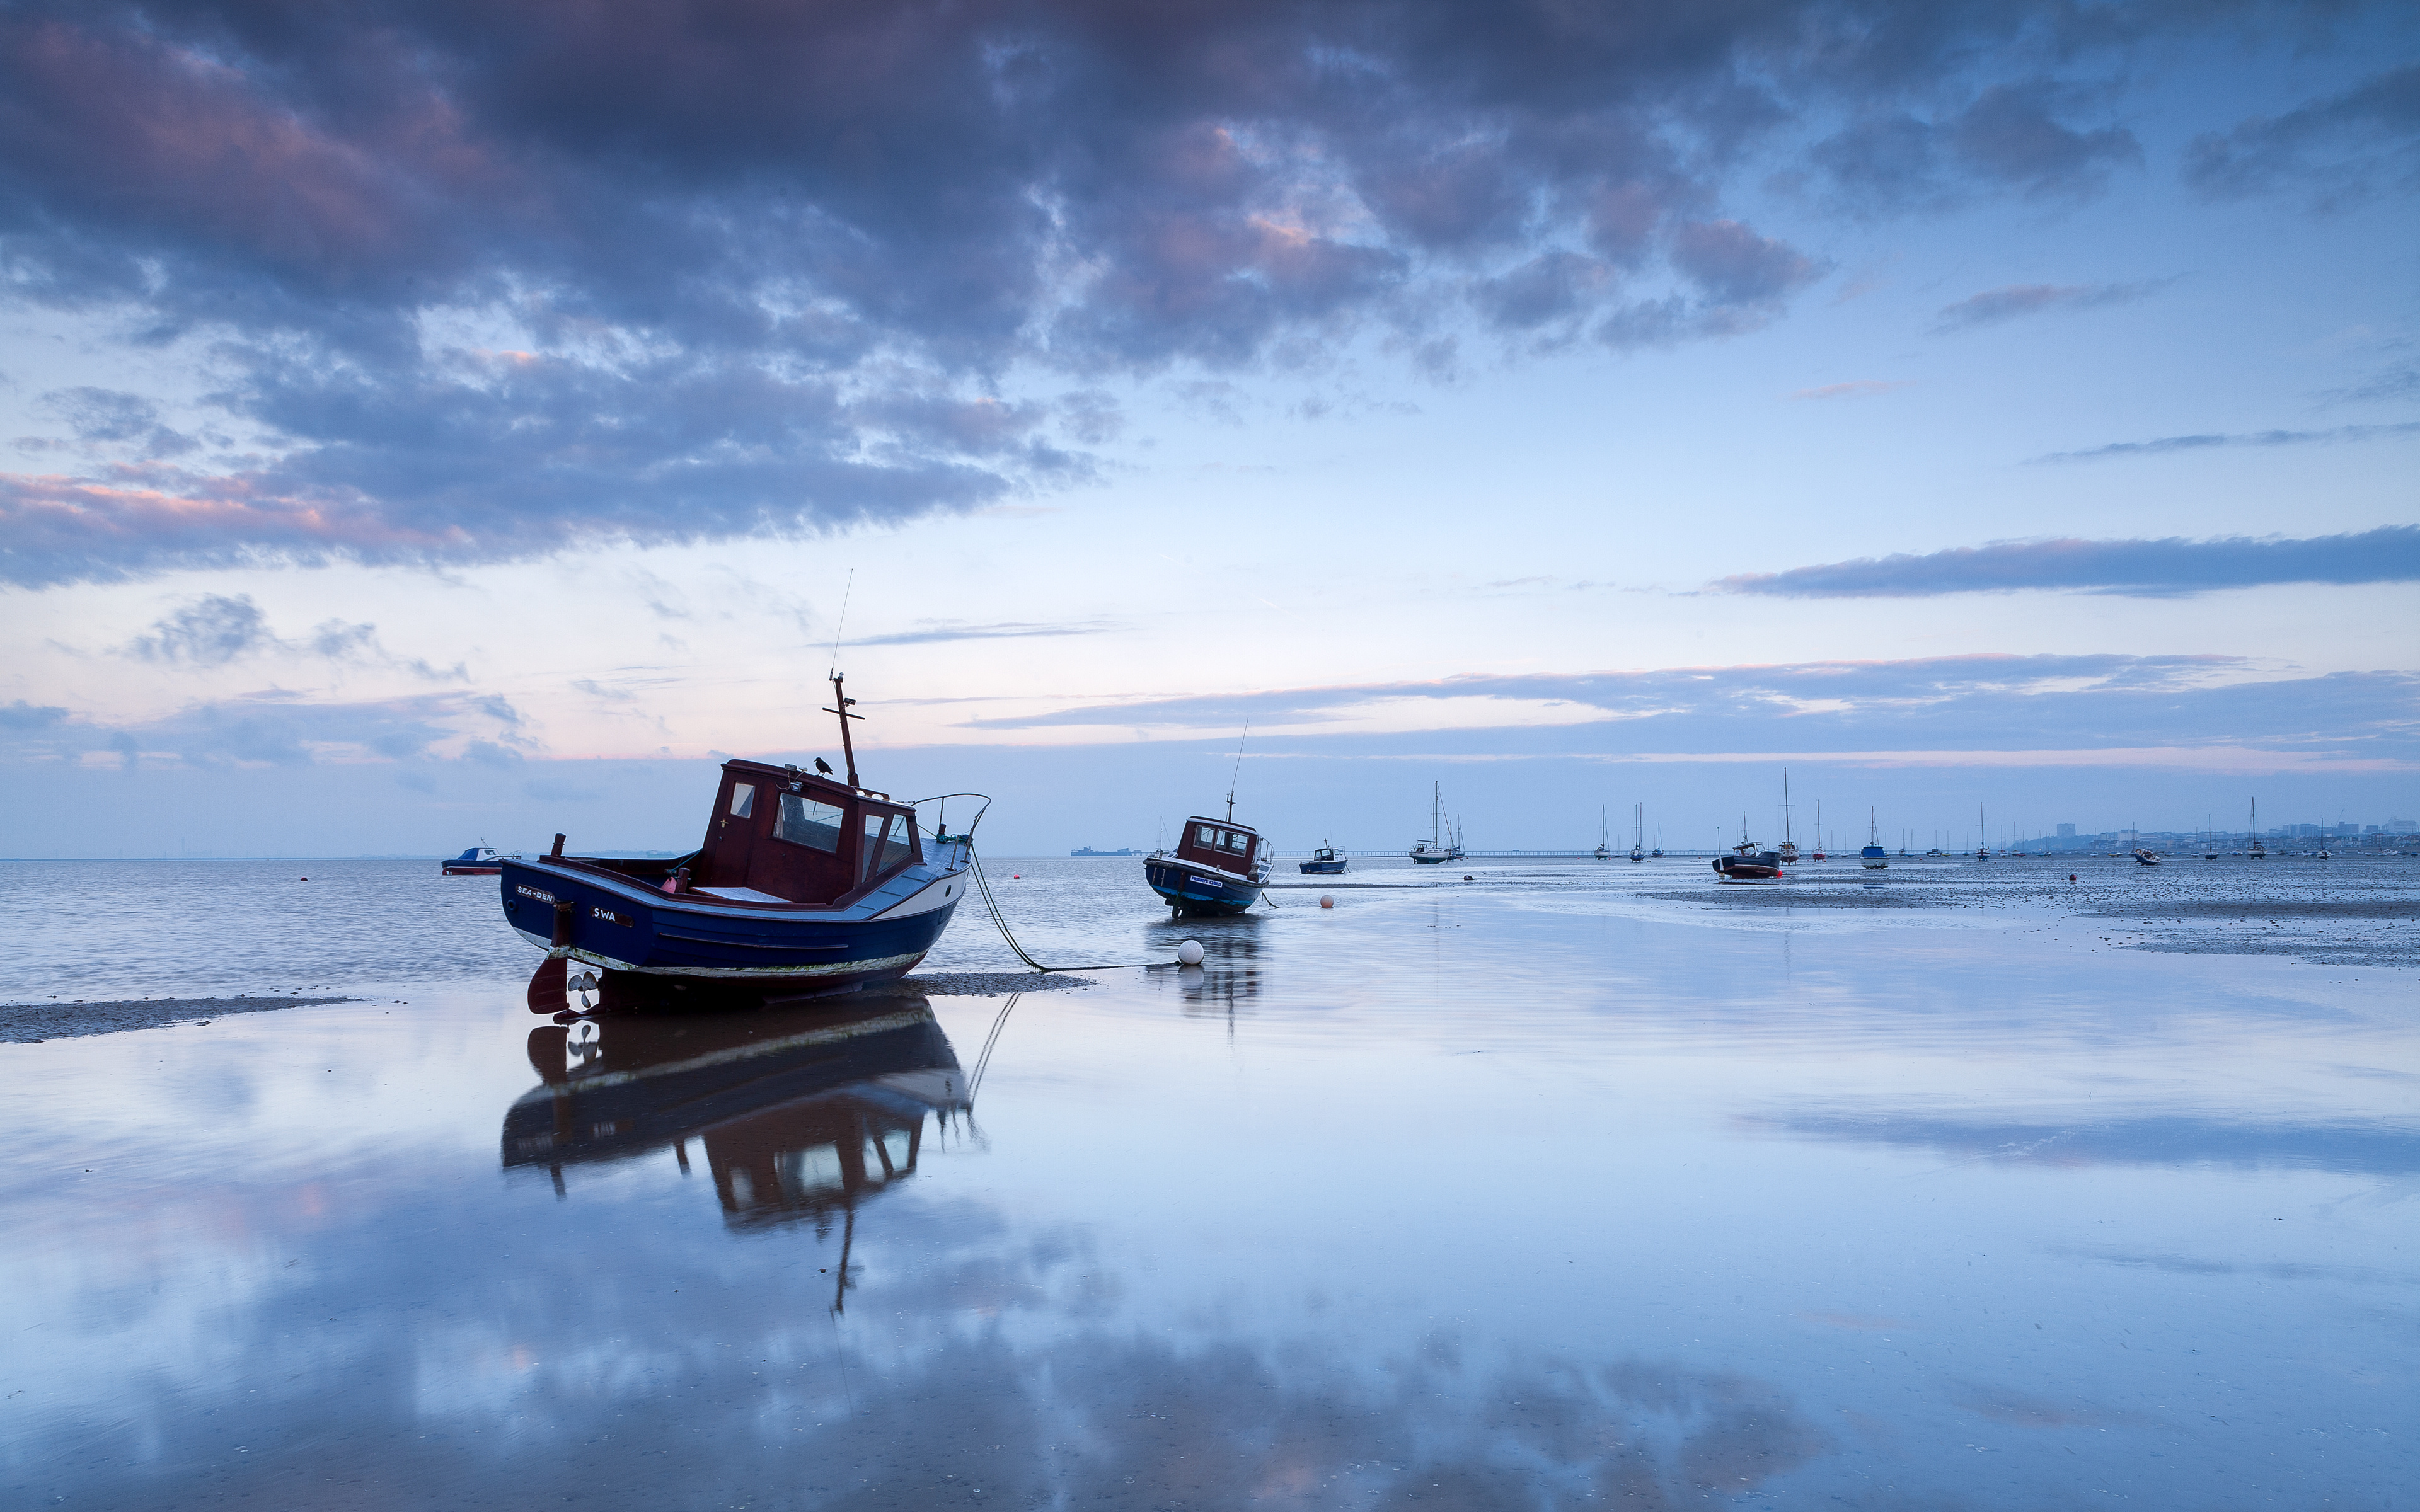 vehicles boat reflection sky cloud ocean sea wallpaper